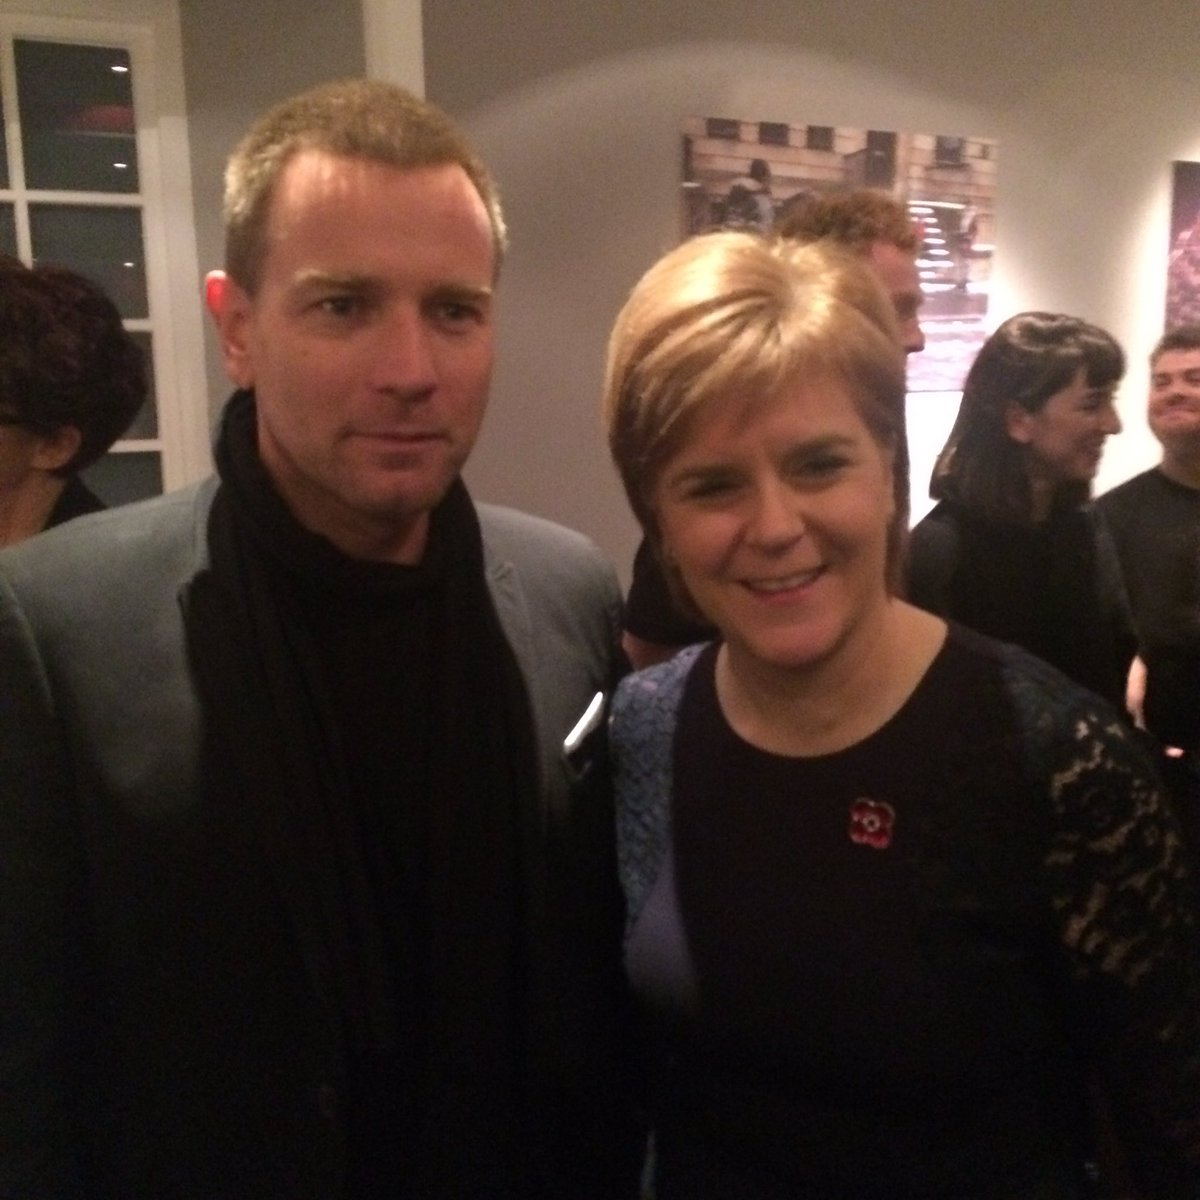 Nicola and Ewan in the Café Bar!!! #AmericanPastoral #edfilmfest #EwanMcGregor #FirstMinister https://t.co/6CFDqDkiQi